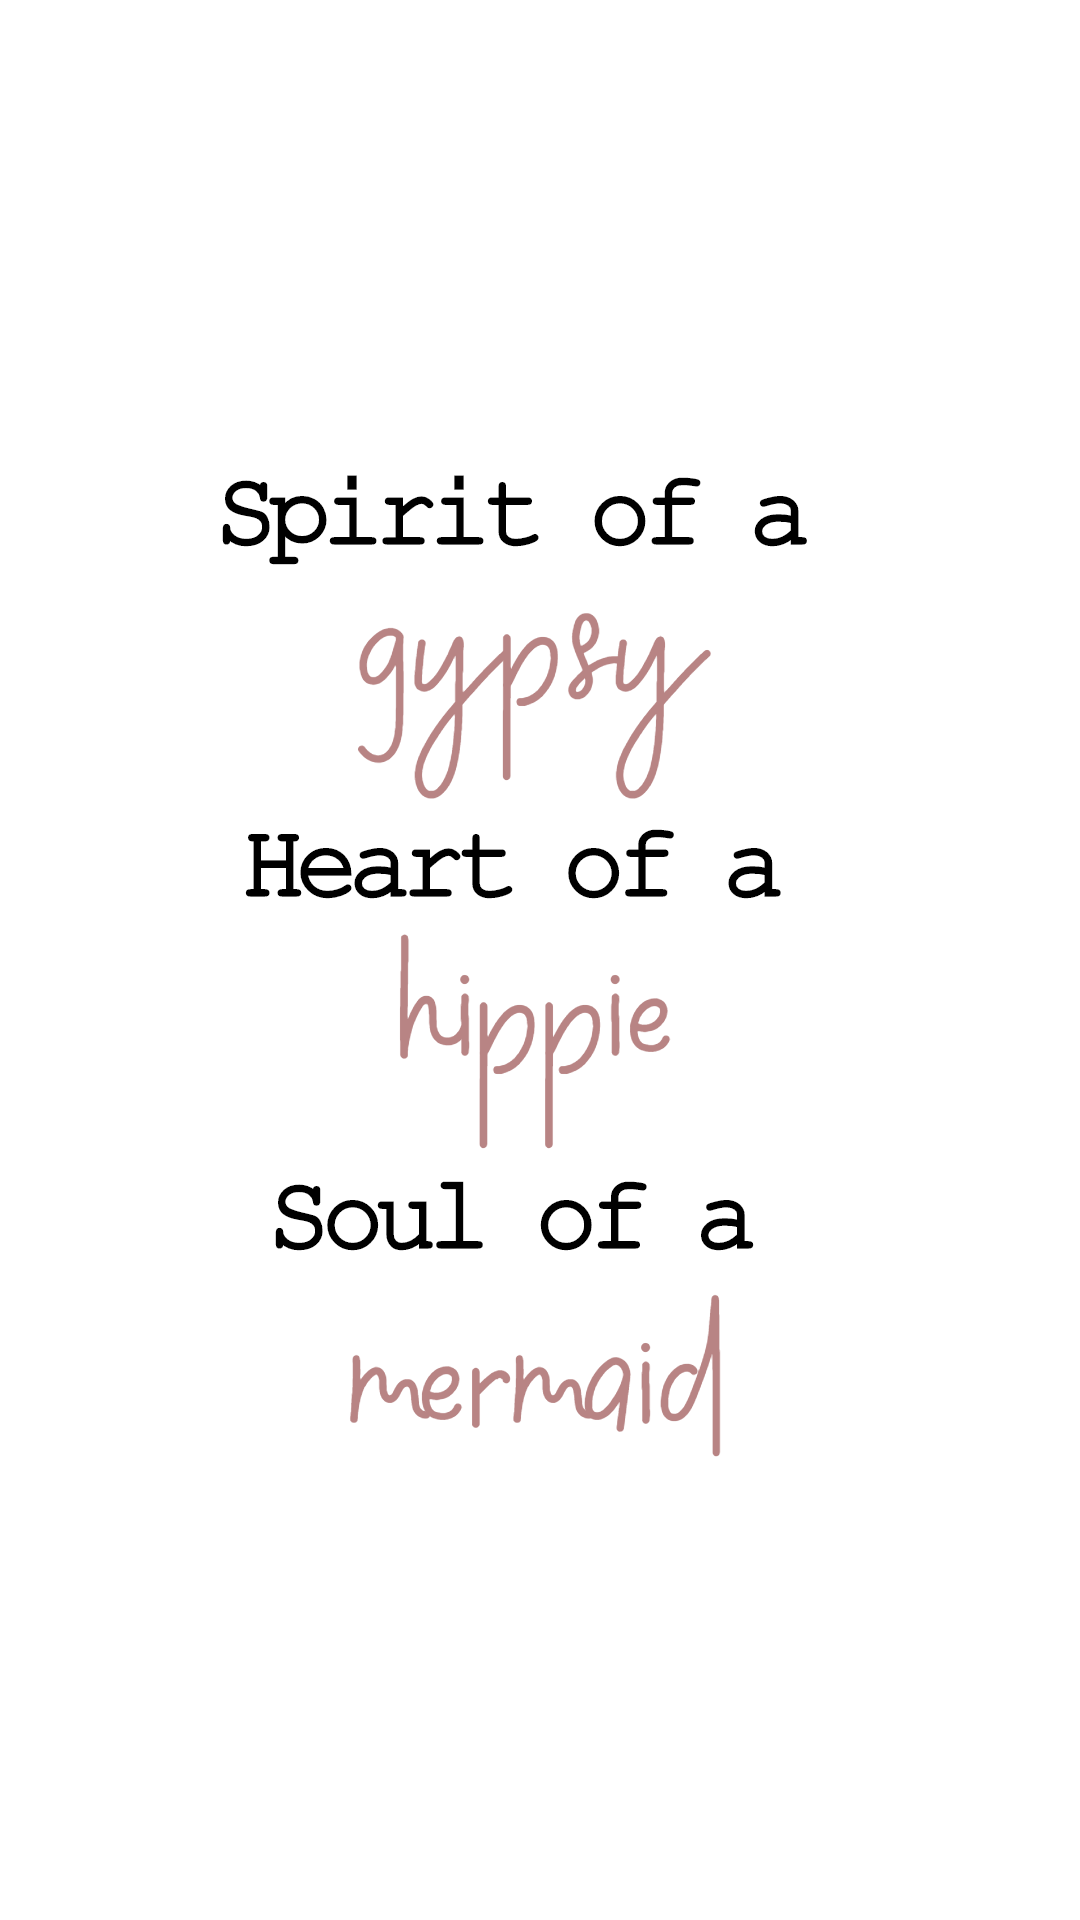 Spirit of a gypsy, heart of a hippie, soul of a mermaid